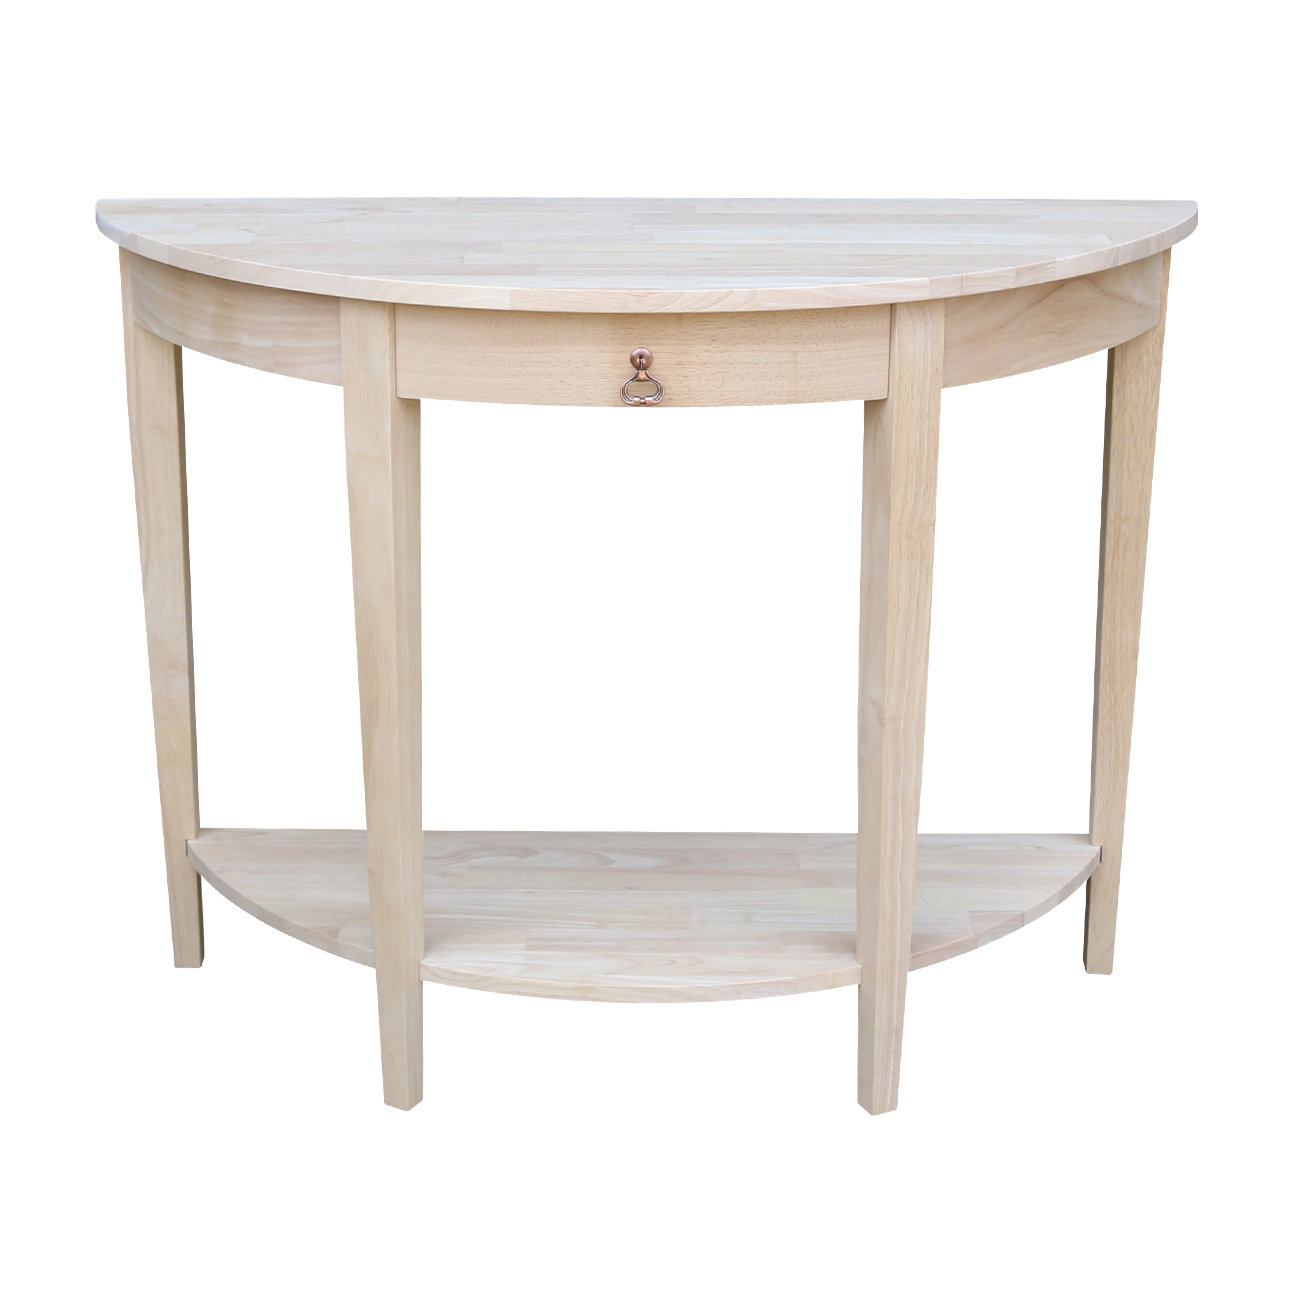 International Concepts Ot 1643Hd Half Moon Console Table, Ready To Finish